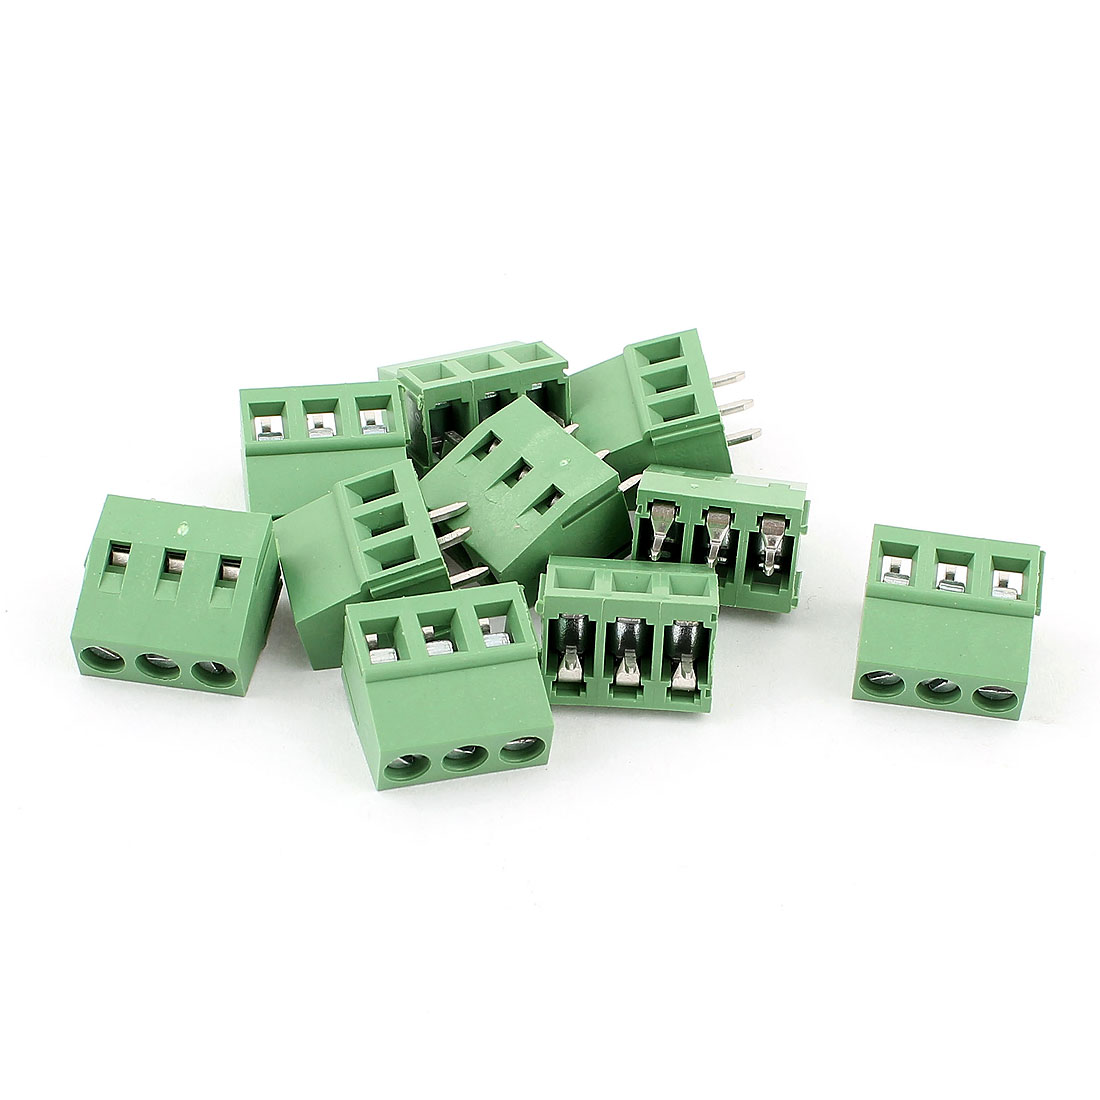 10 Pcs AC 300V 10A PCB Terminal Block Connector 5.0mm Pitch Green